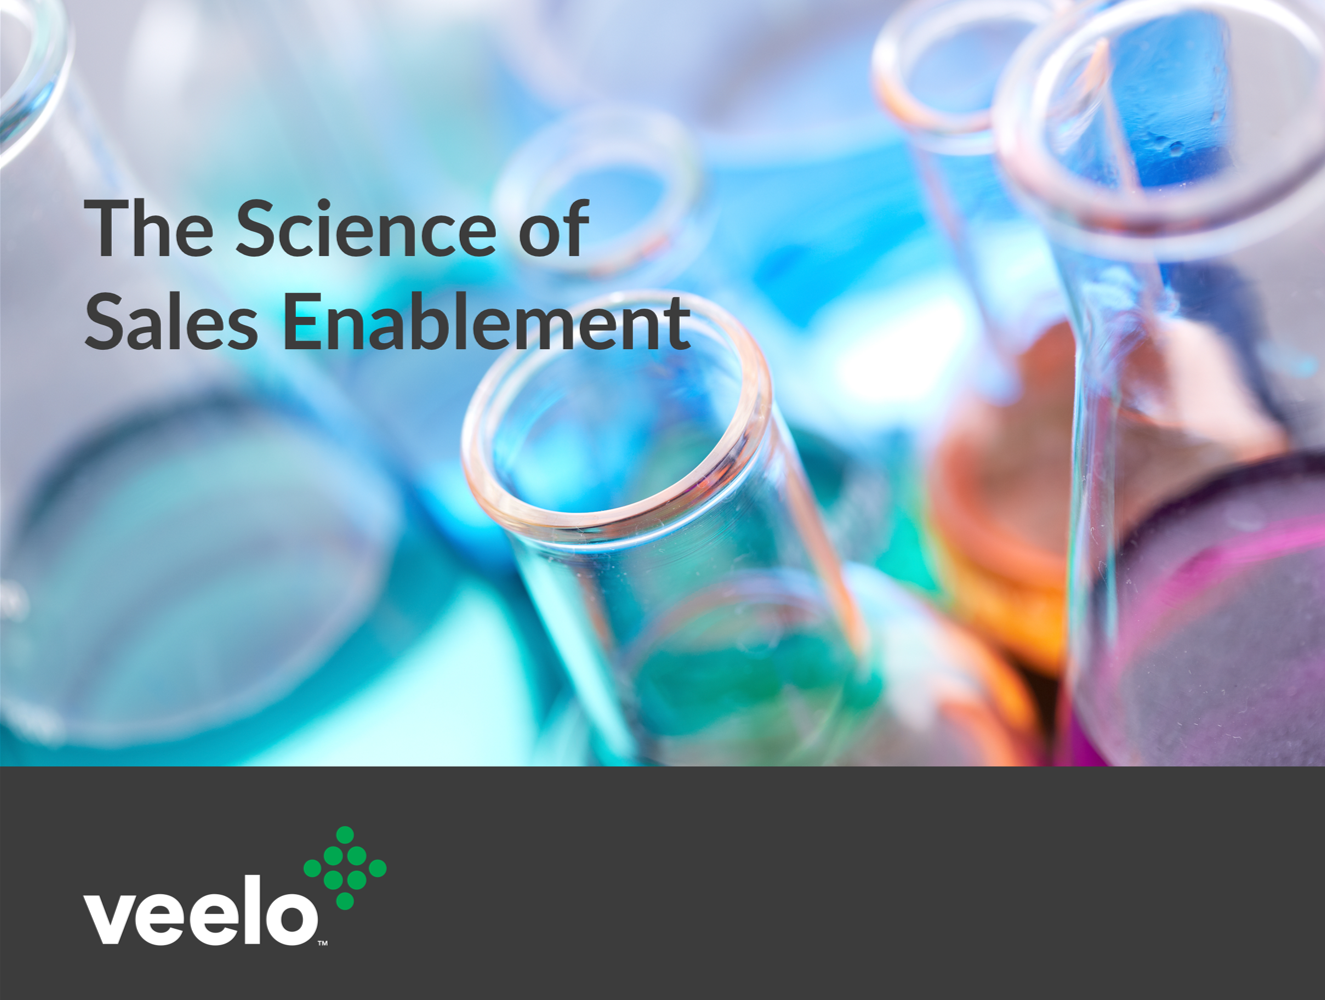 Science of Sales Enablement